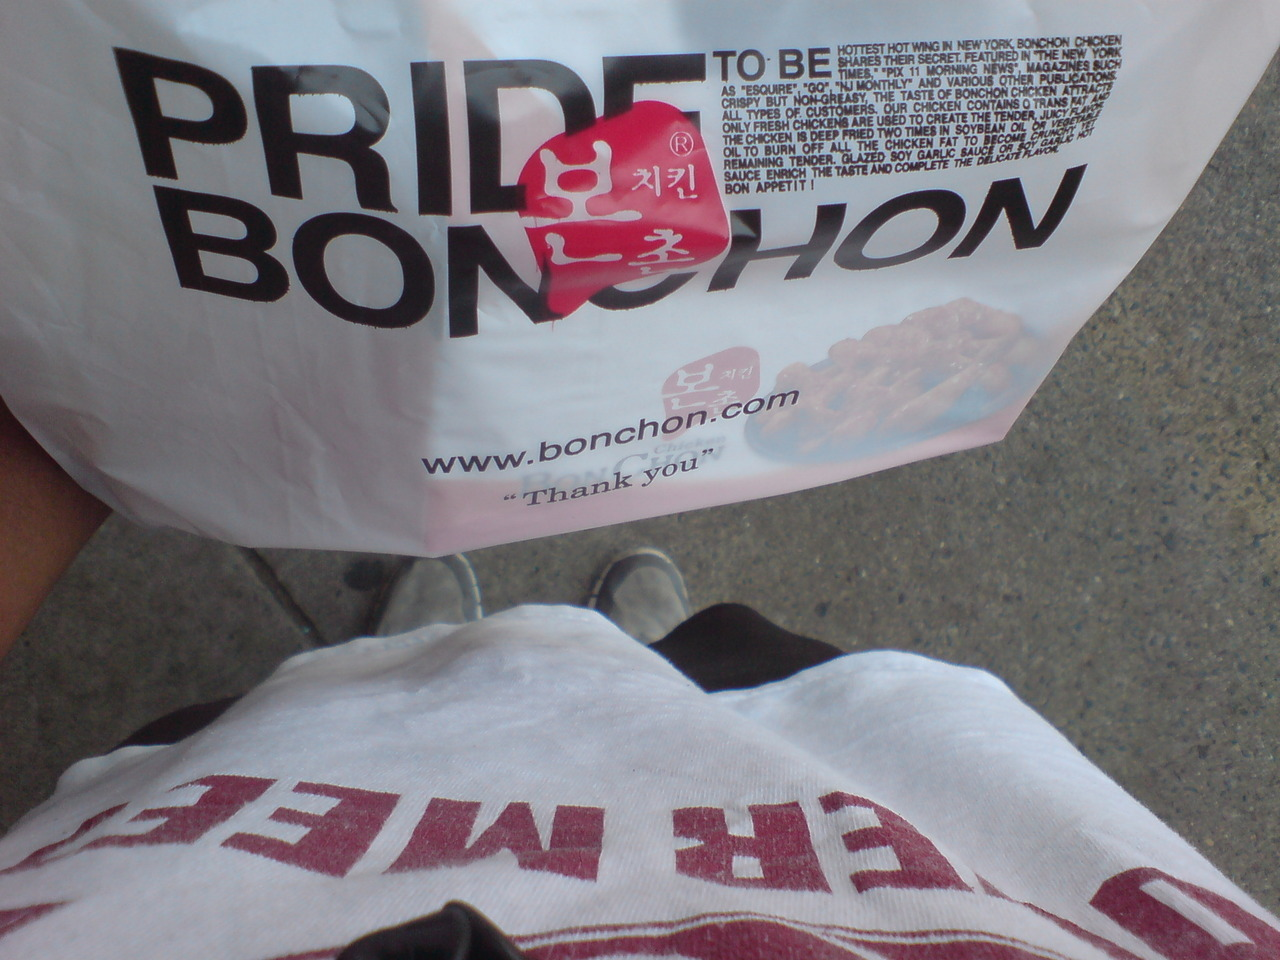 After my morning run, i picked up Bonchon for lunch! Now i got to figure out how im going to run back home while carrying these chicken :O